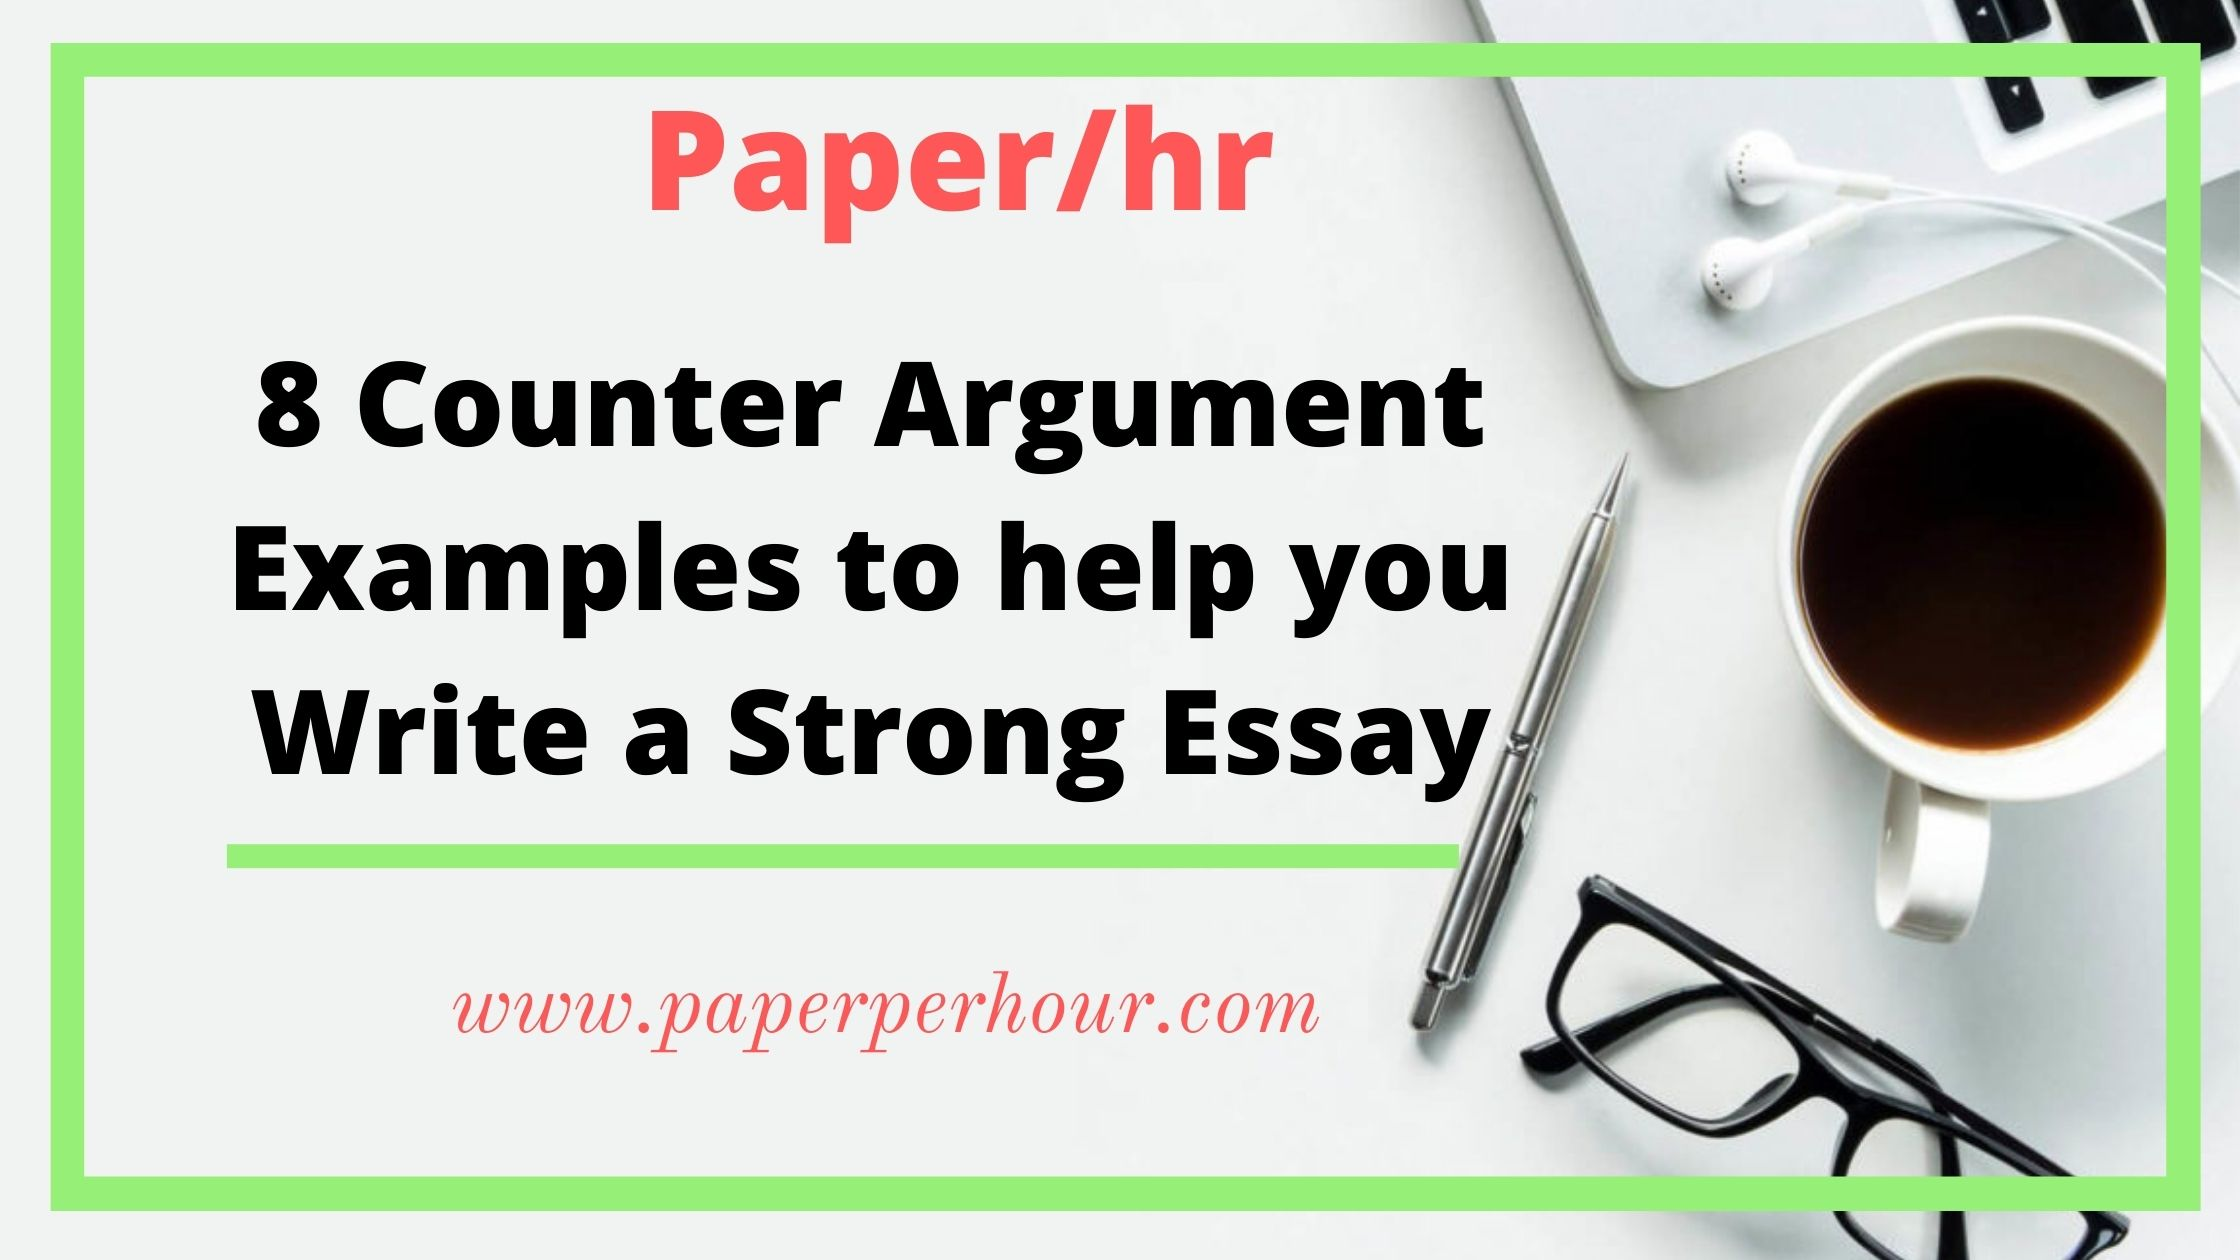 30 Counter argument examples to help you write a strong essay ...